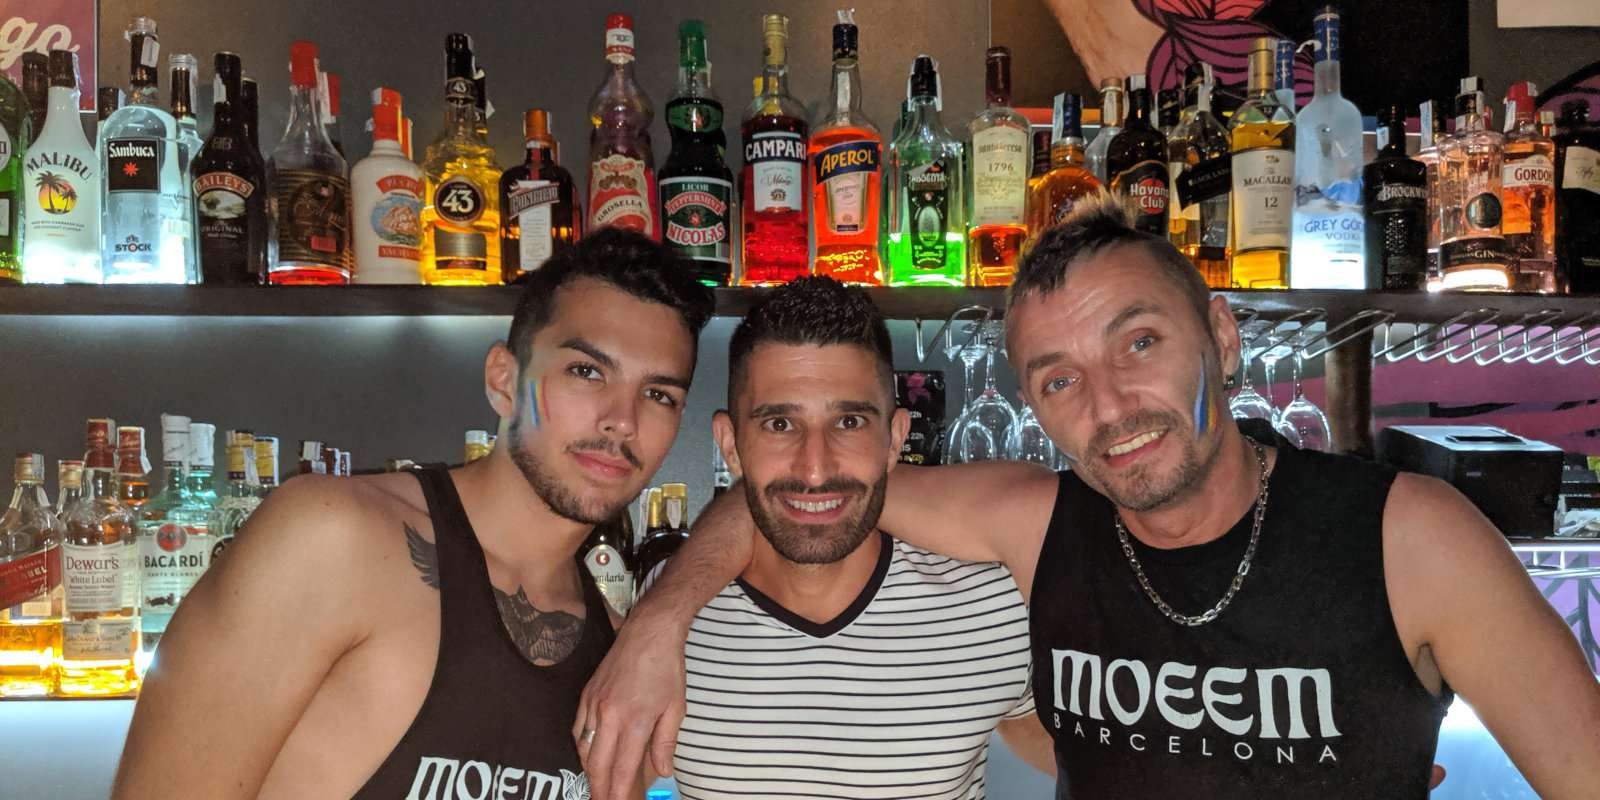 Explore some of Barcelona's best gay bars on a private gay night tour!